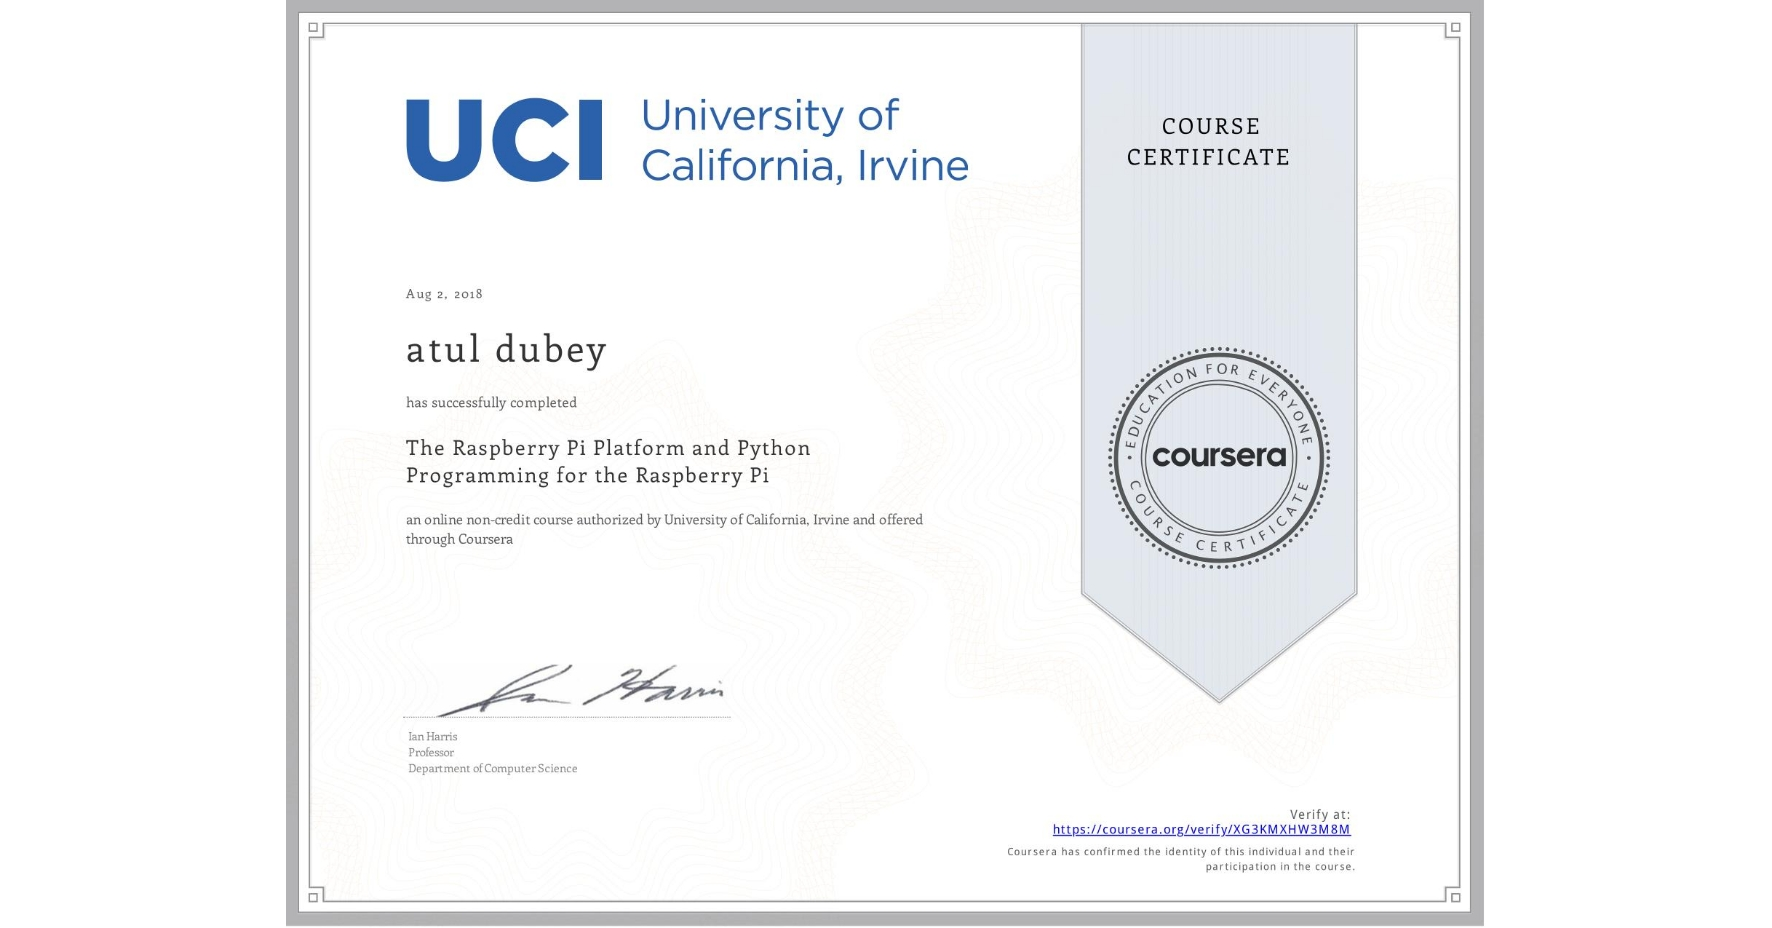 View certificate for atul dubey, The Raspberry Pi Platform and Python Programming for the Raspberry Pi, an online non-credit course authorized by University of California, Irvine and offered through Coursera